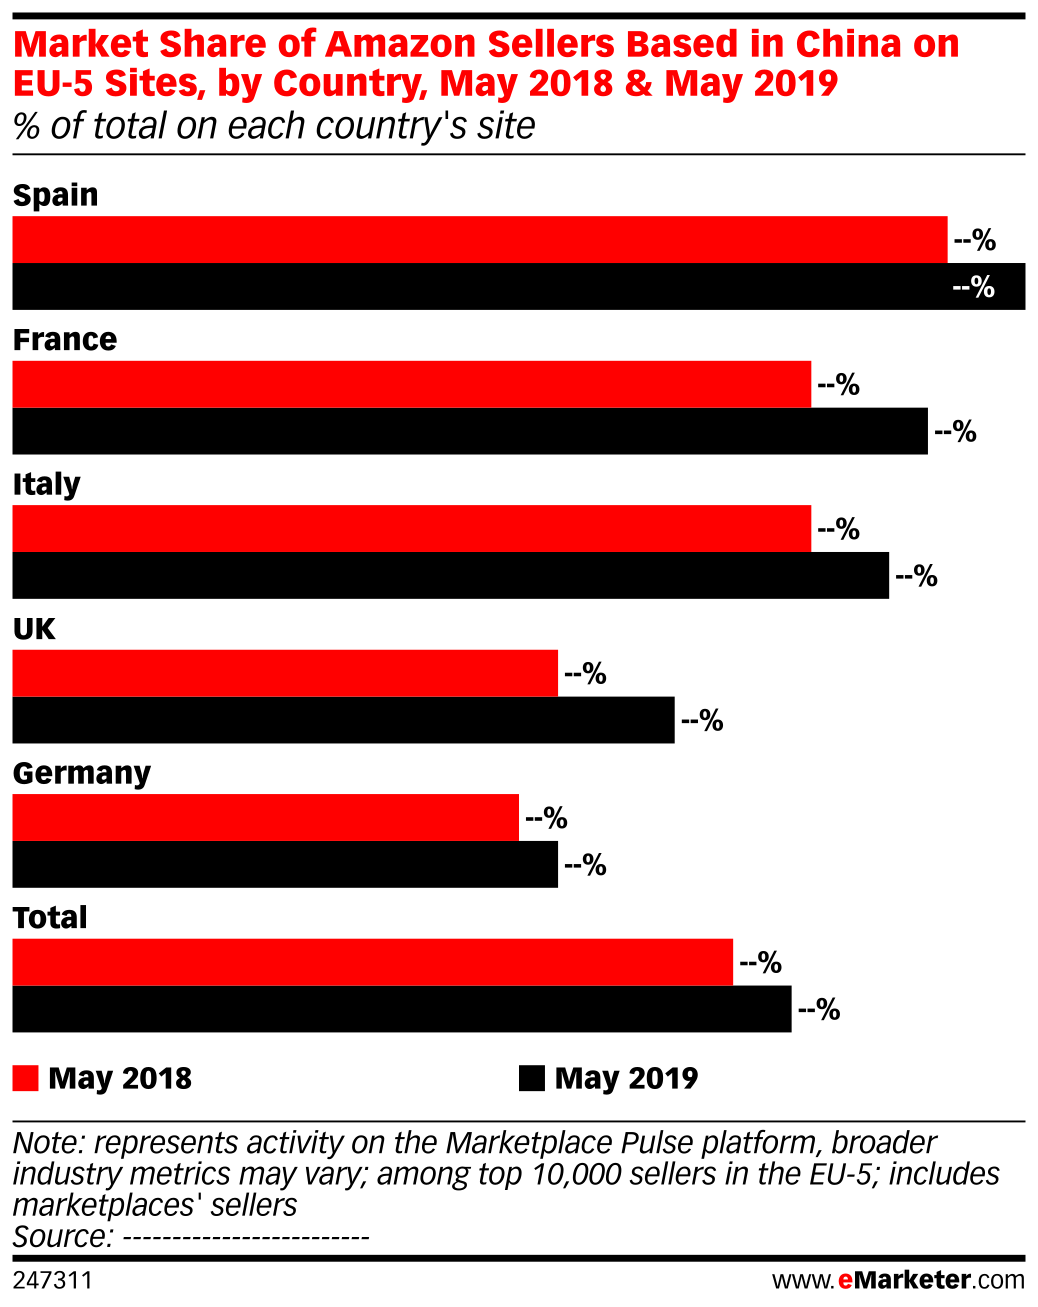 Market Share of Amazon Sellers Based in China on EU-5 Sites, by Country, May 2018 & May 2019 (% of total on each country's site)